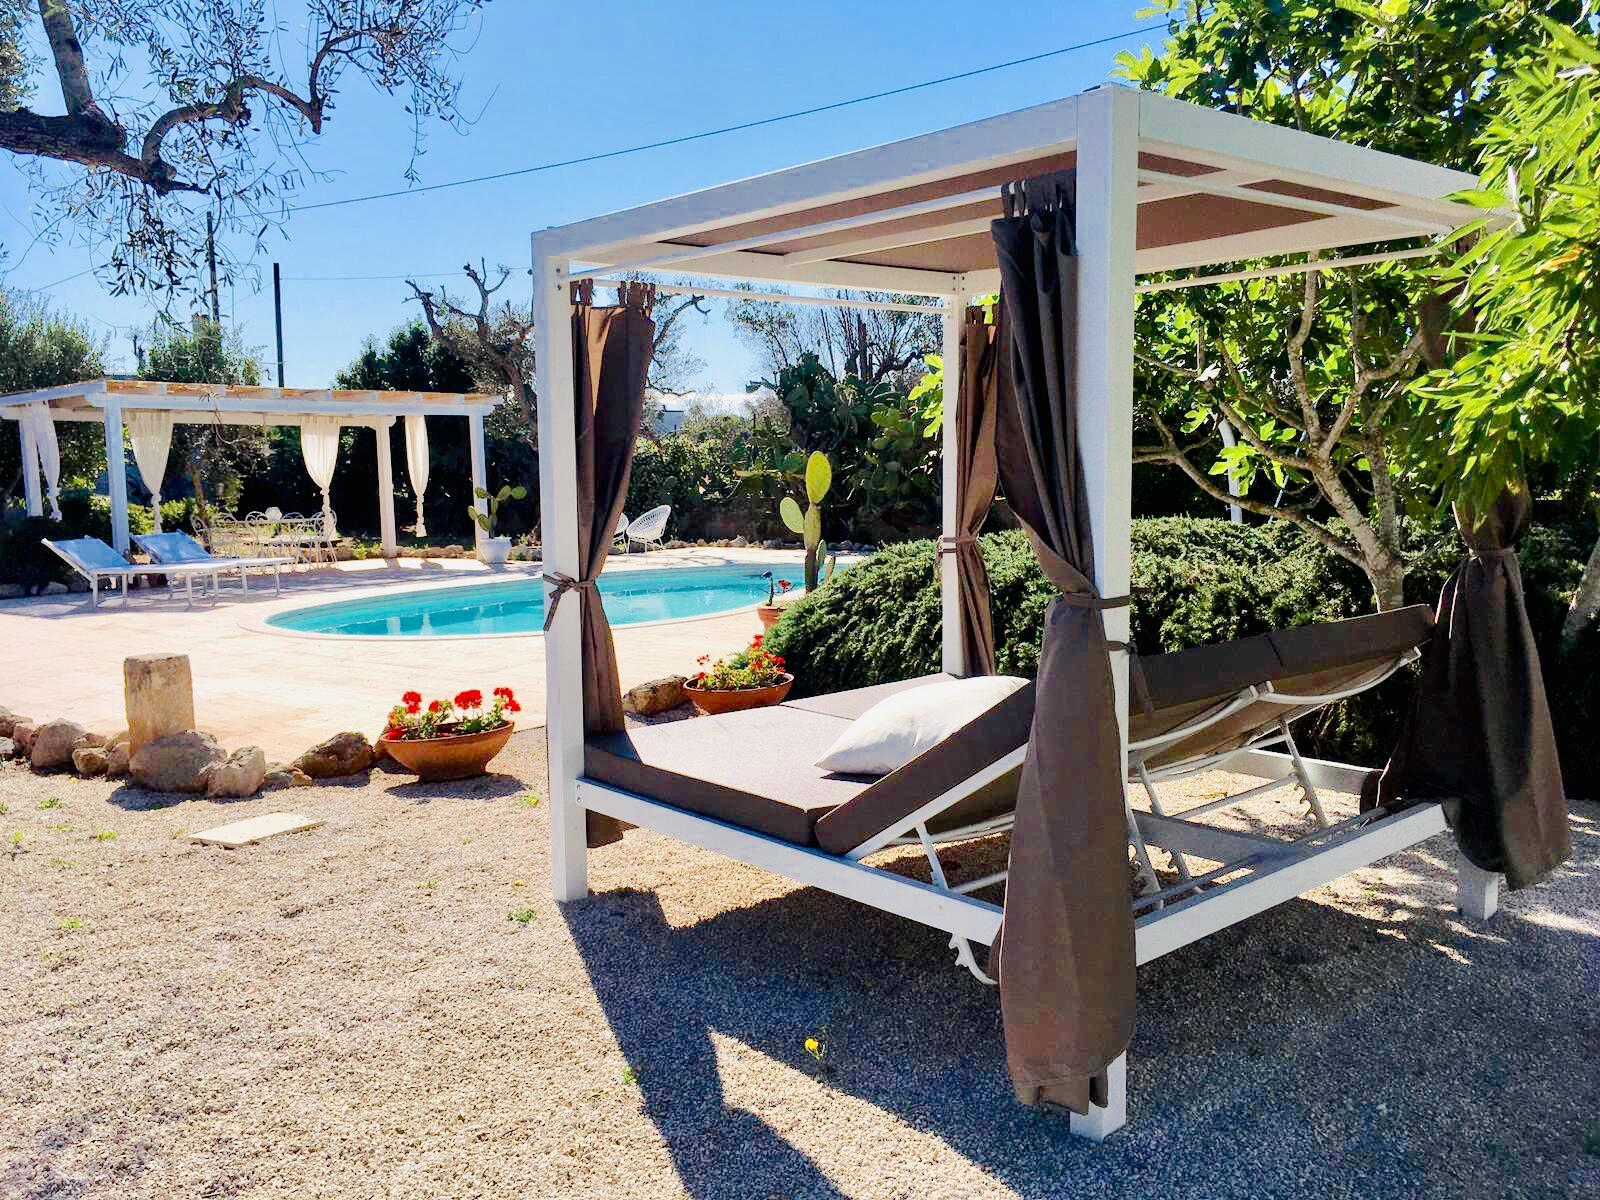 Gazebo pool area